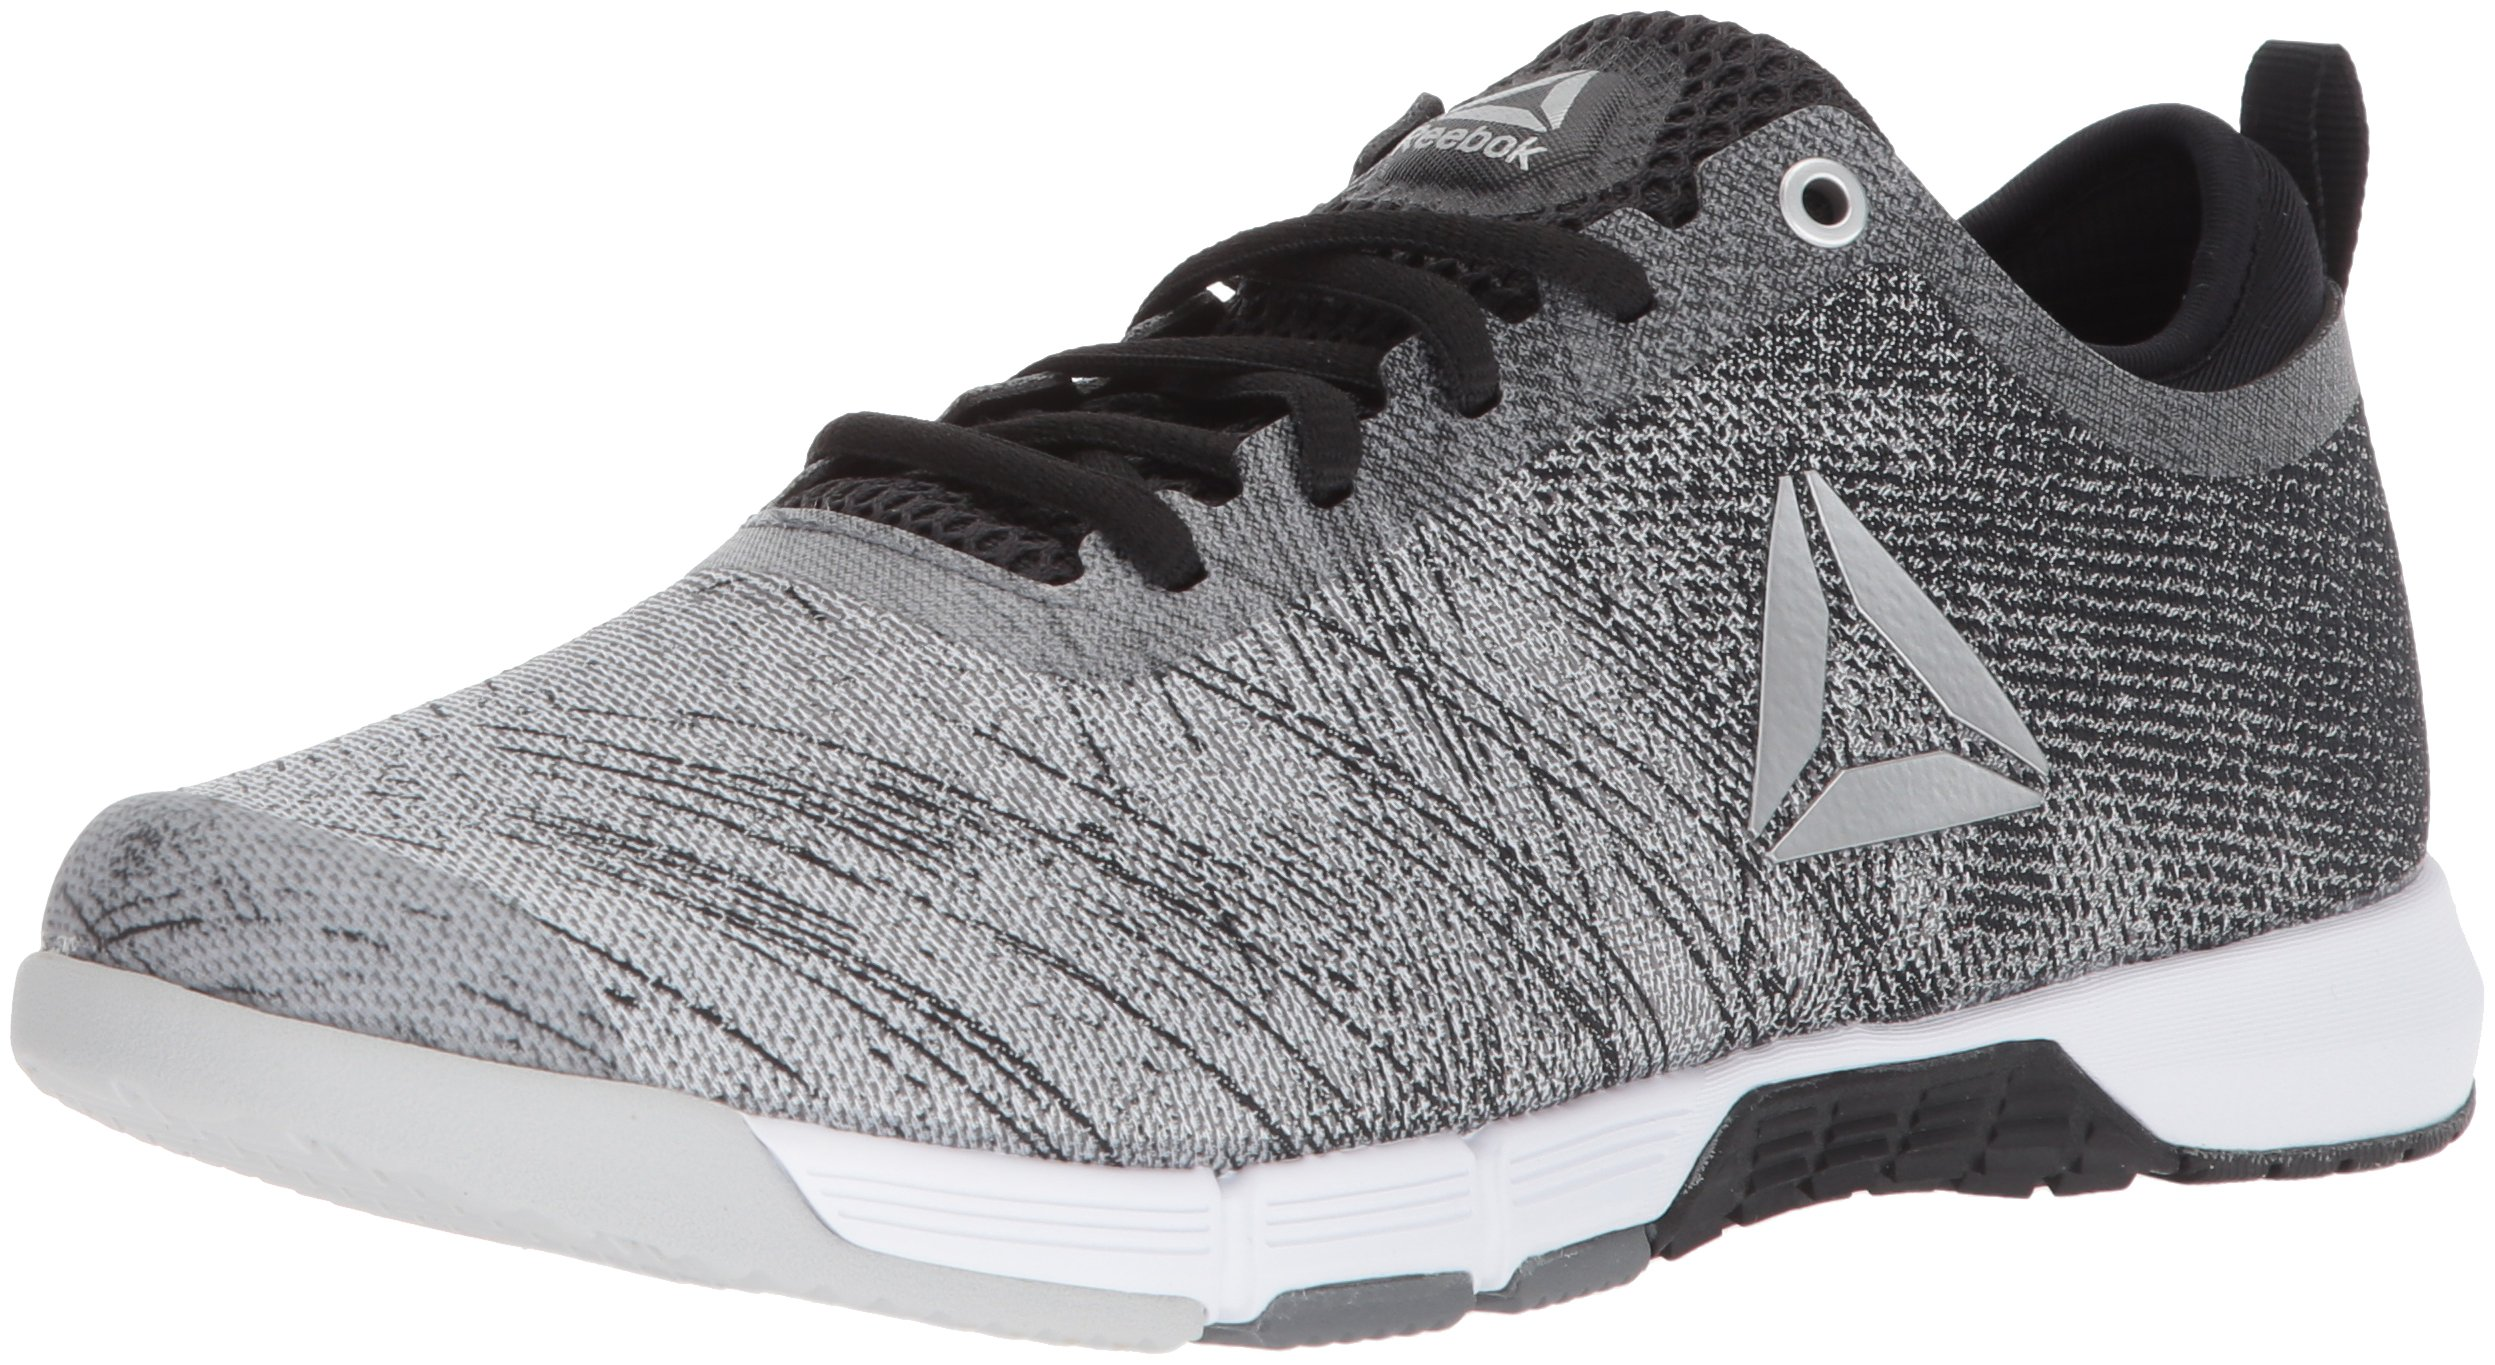 Reebok Women's Grace TR 2.0 Sneaker, Alloy/Black/White/Skull Grey/Silver, 8.5 M US